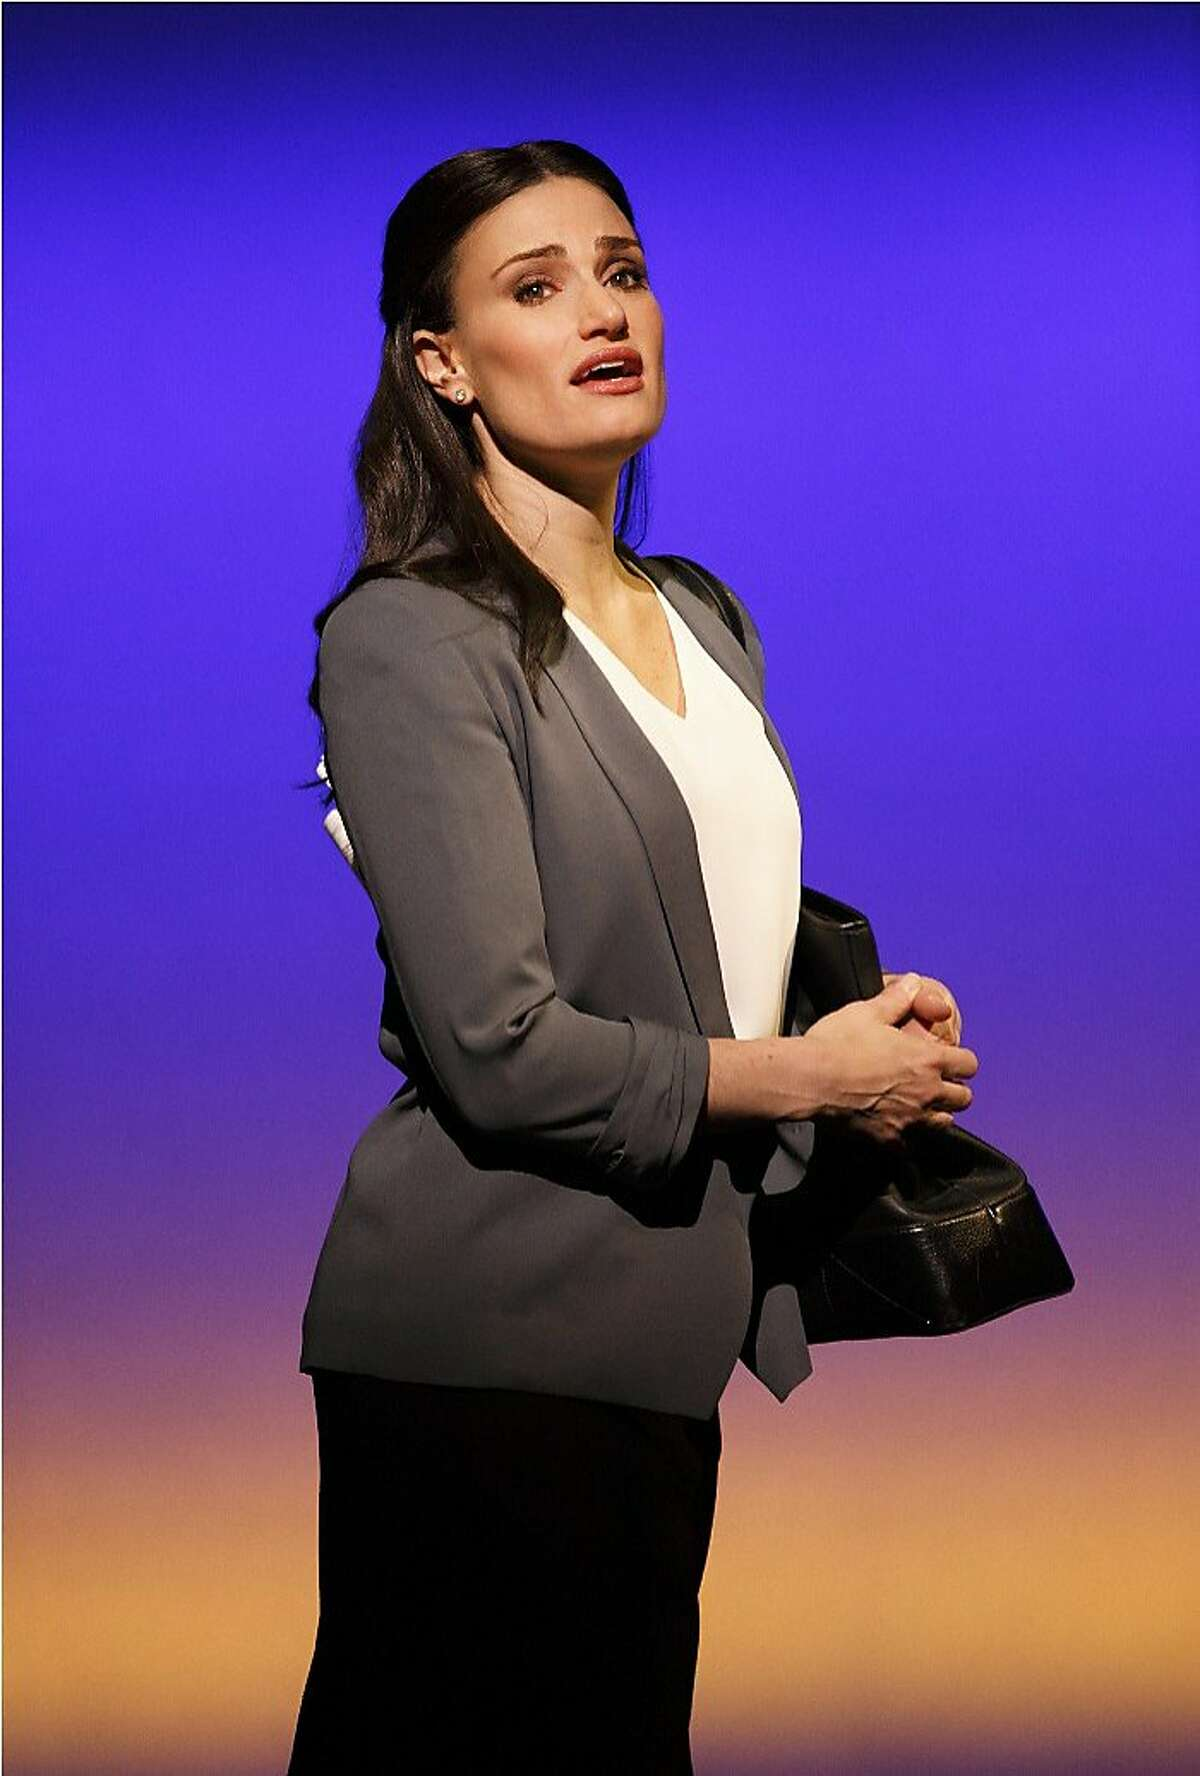 Idina Menzel plays Liz and Beth, the alternate lives Elizabeth might lead in